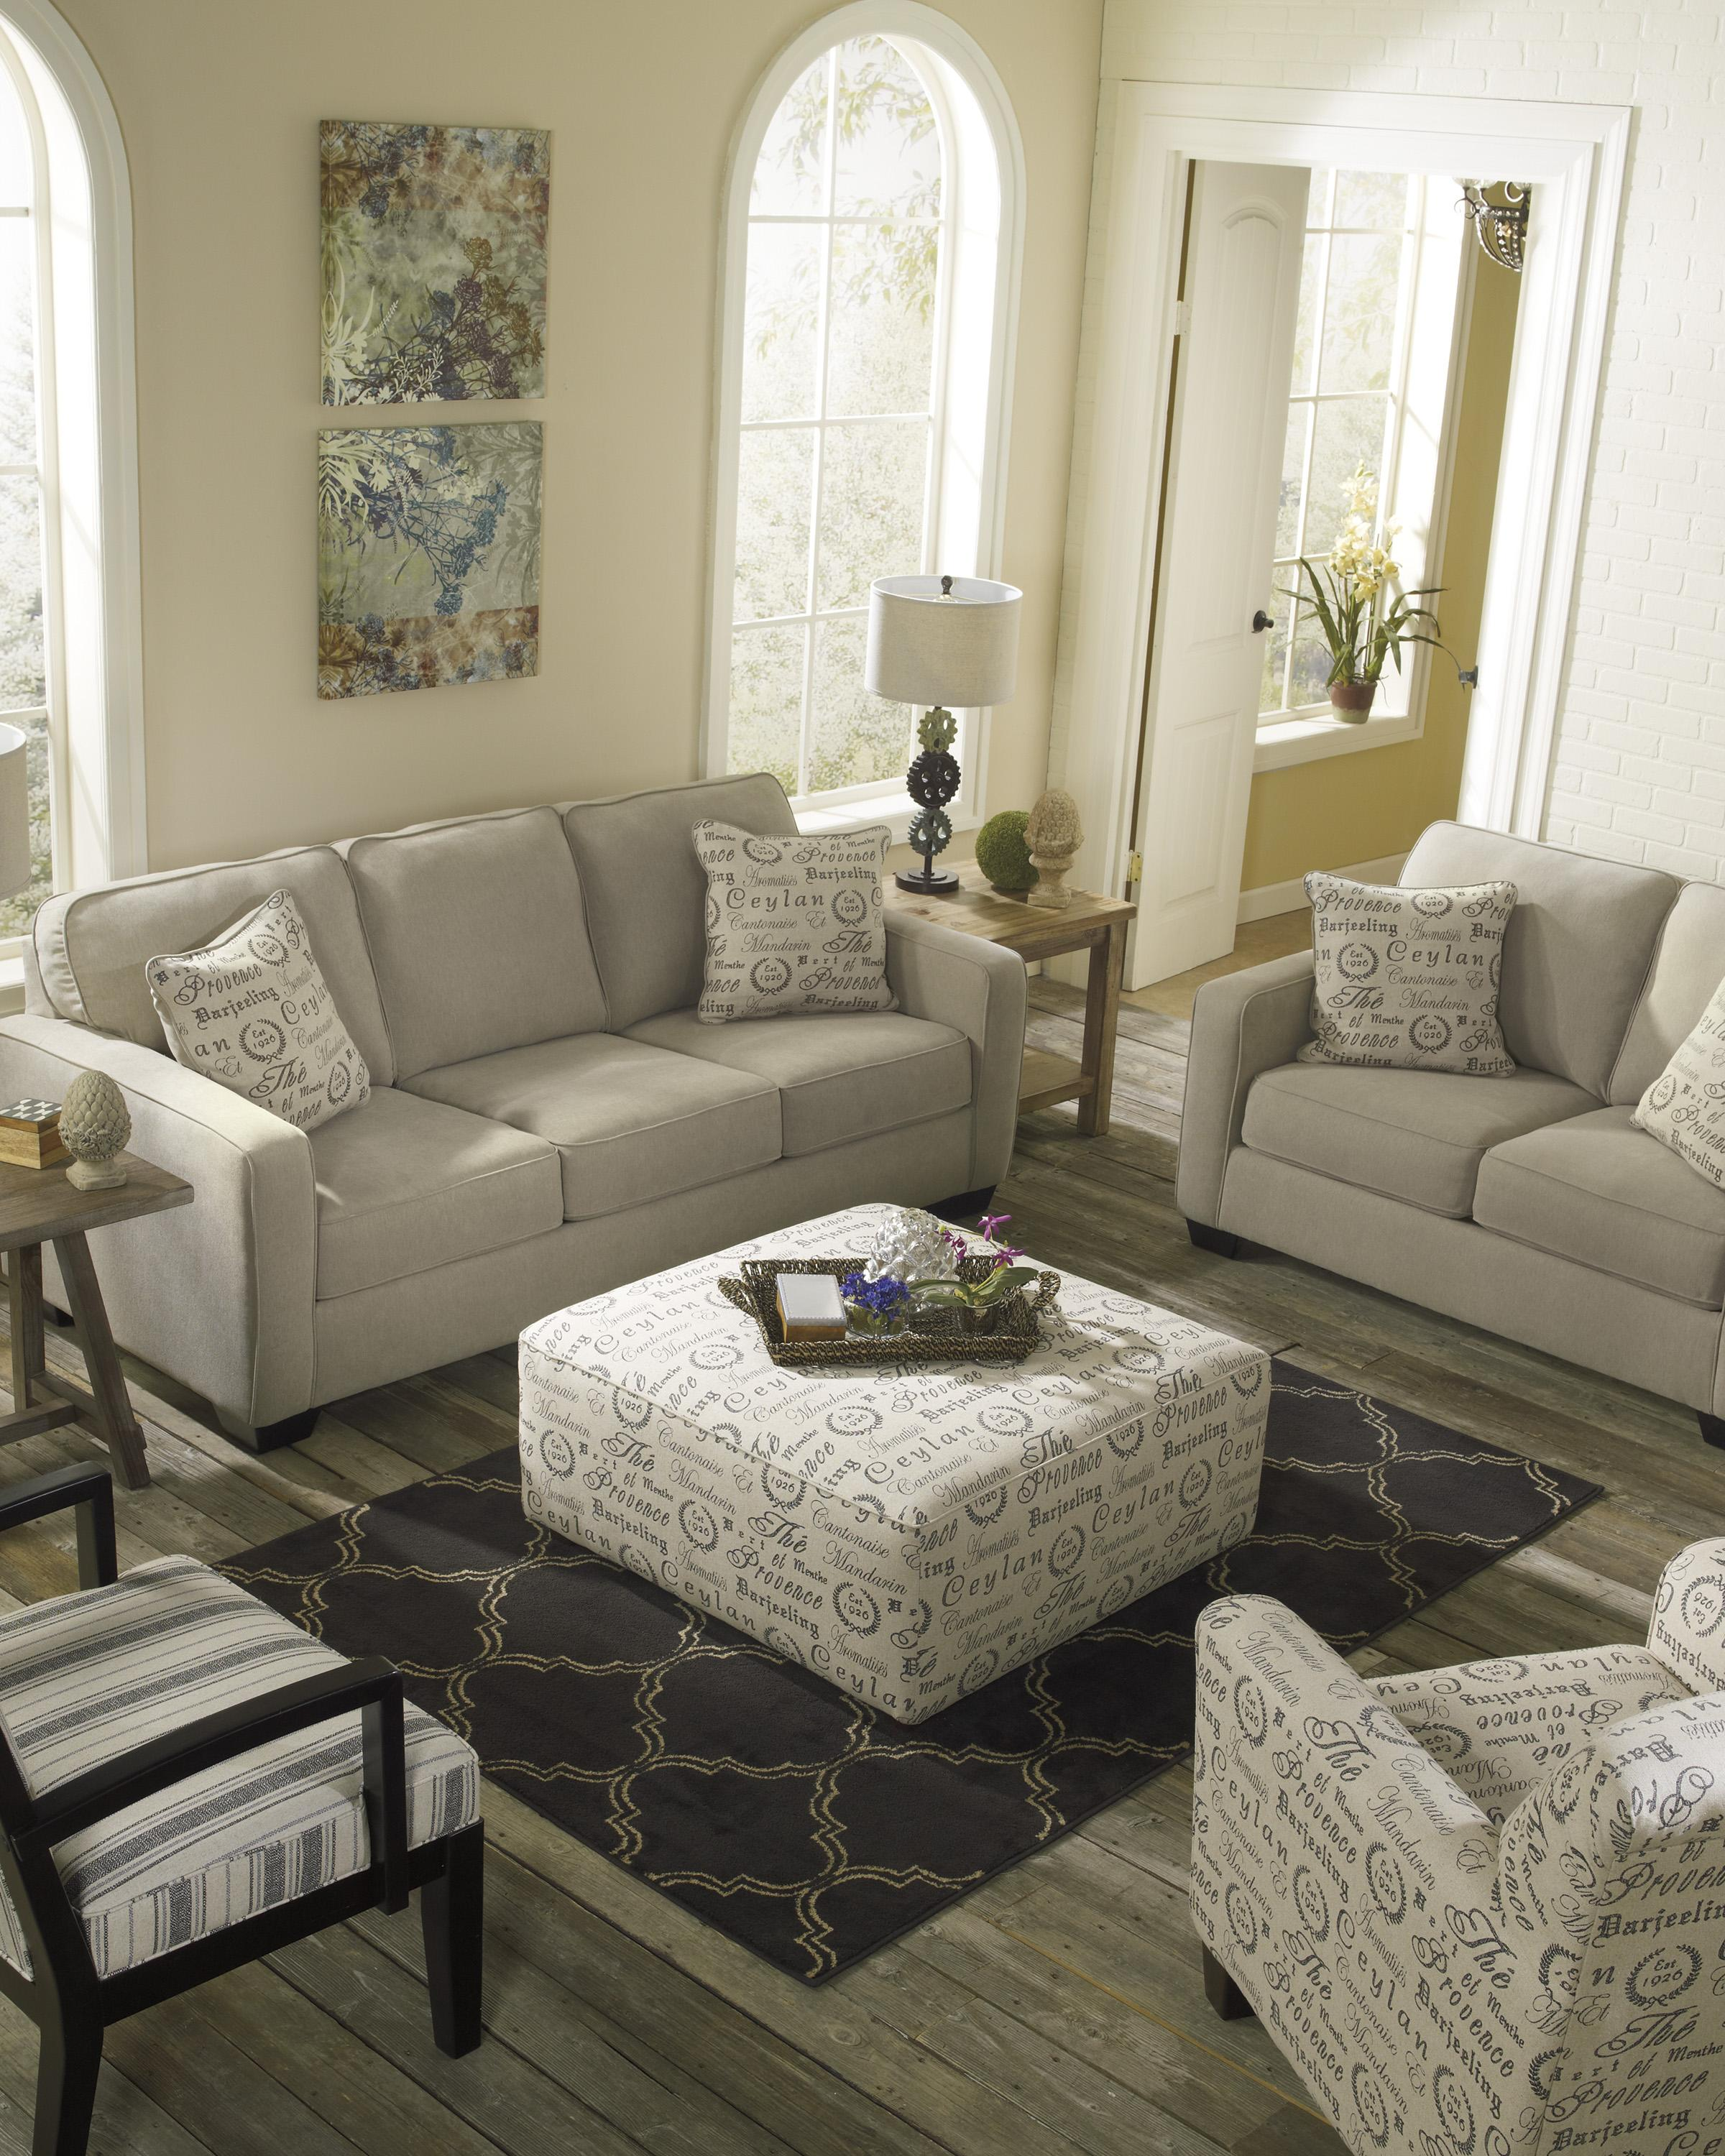 Incredible ashley furniture tacoma for home furniture with ashley furniture tacoma wa